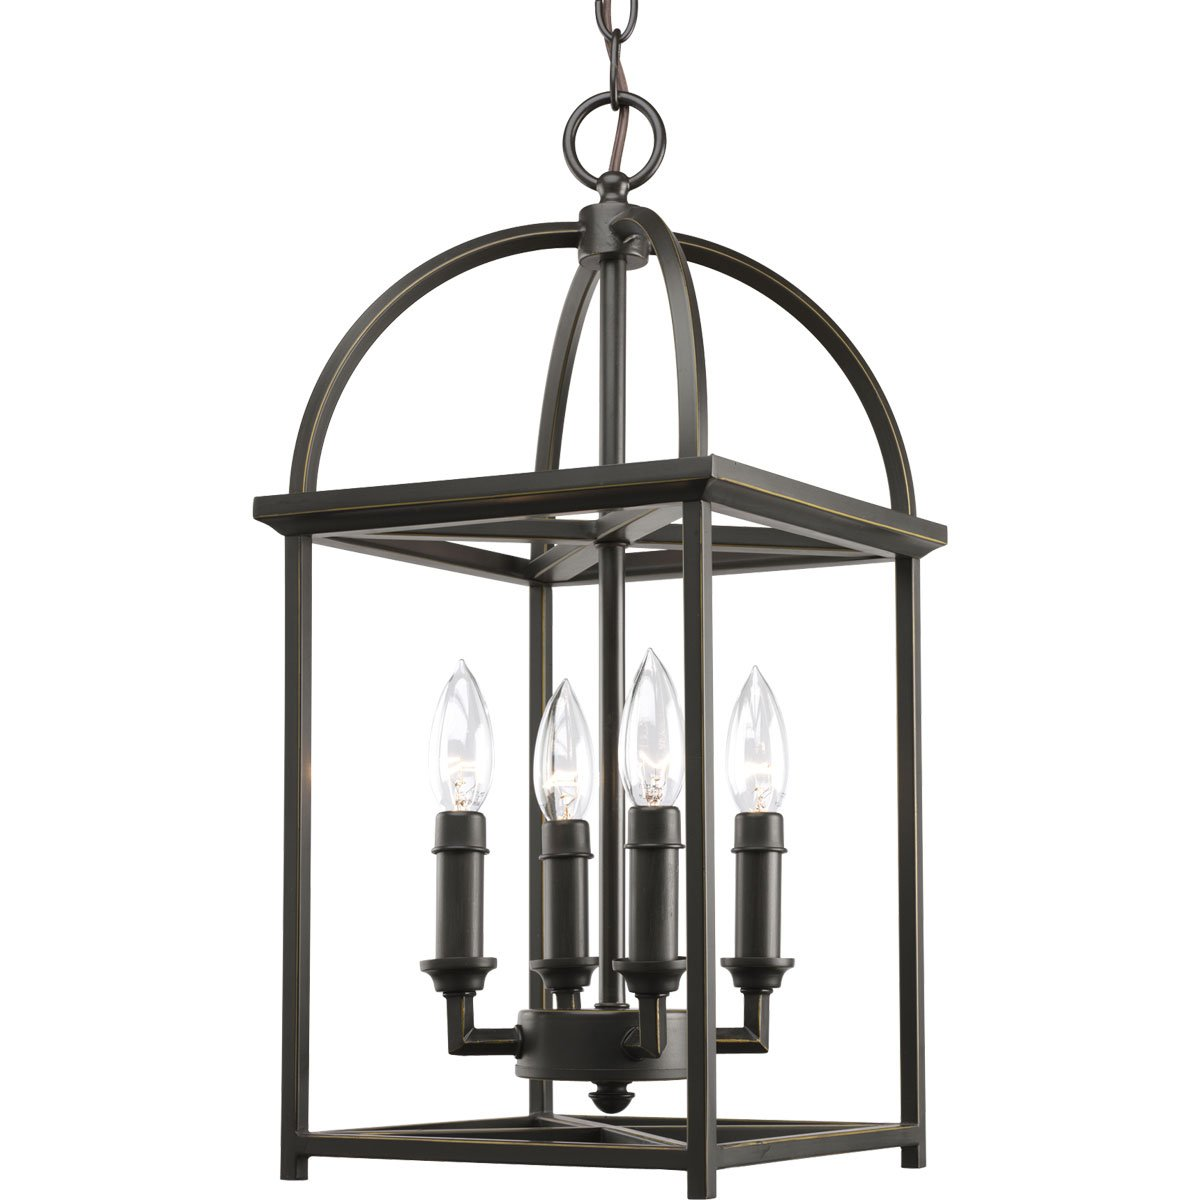 Progress Lighting 94388420 P3884-20 Piedmont Collection Four-Light Foyer Lantern 13-3/8  Width  x 20-3/8  Height Antique Bronze - Ceiling Pendant Fixtures ...  sc 1 st  Amazon.com & Progress Lighting 94388420 P3884-20 Piedmont Collection Four-Light ...